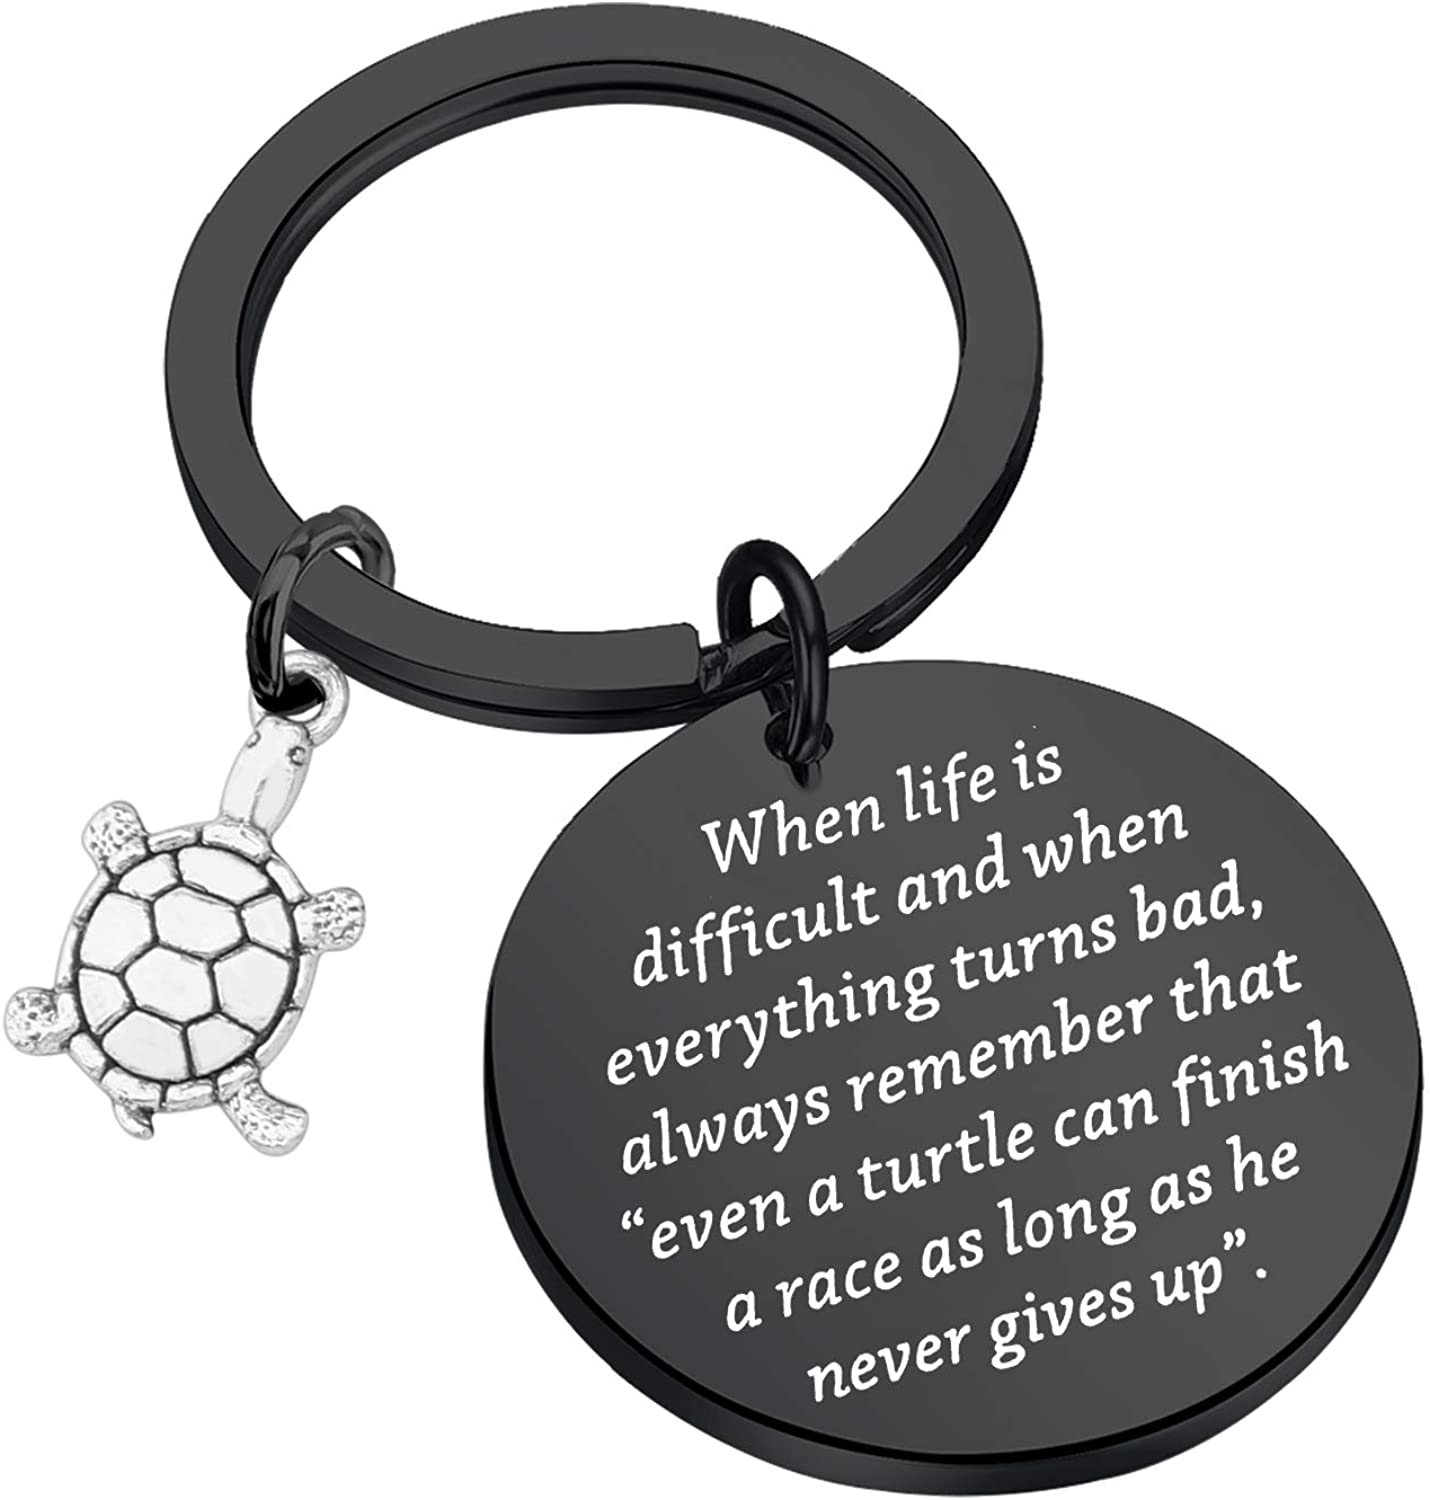 25% OFF SEIRAA Turtle Gift New life Even a Can Race Finish He Long as